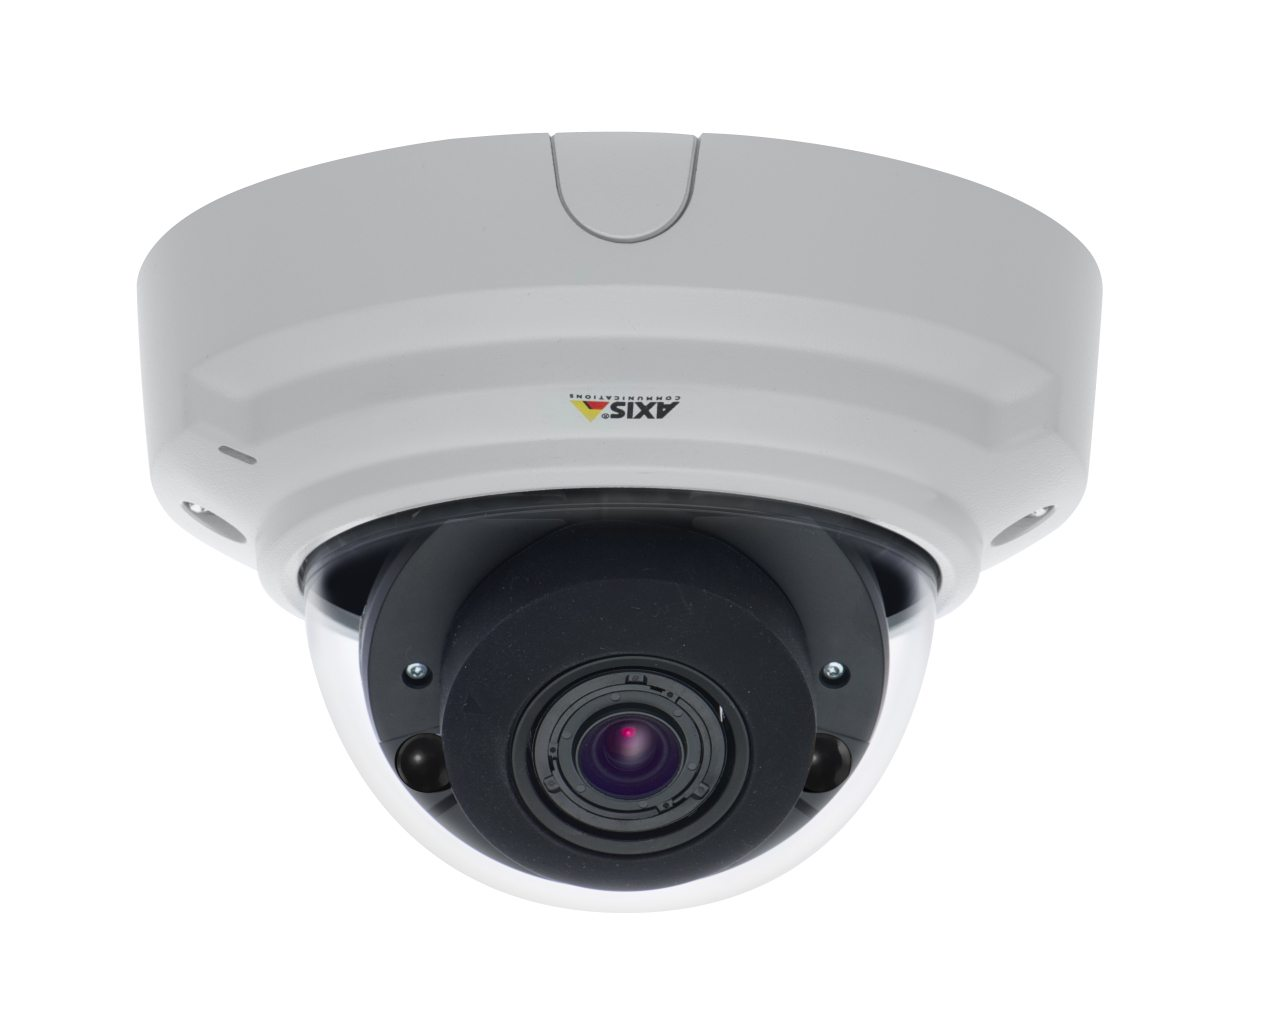 AXIS P3364-LV 12MM (0486-001) Купольная 1 Мп IP видеокамера